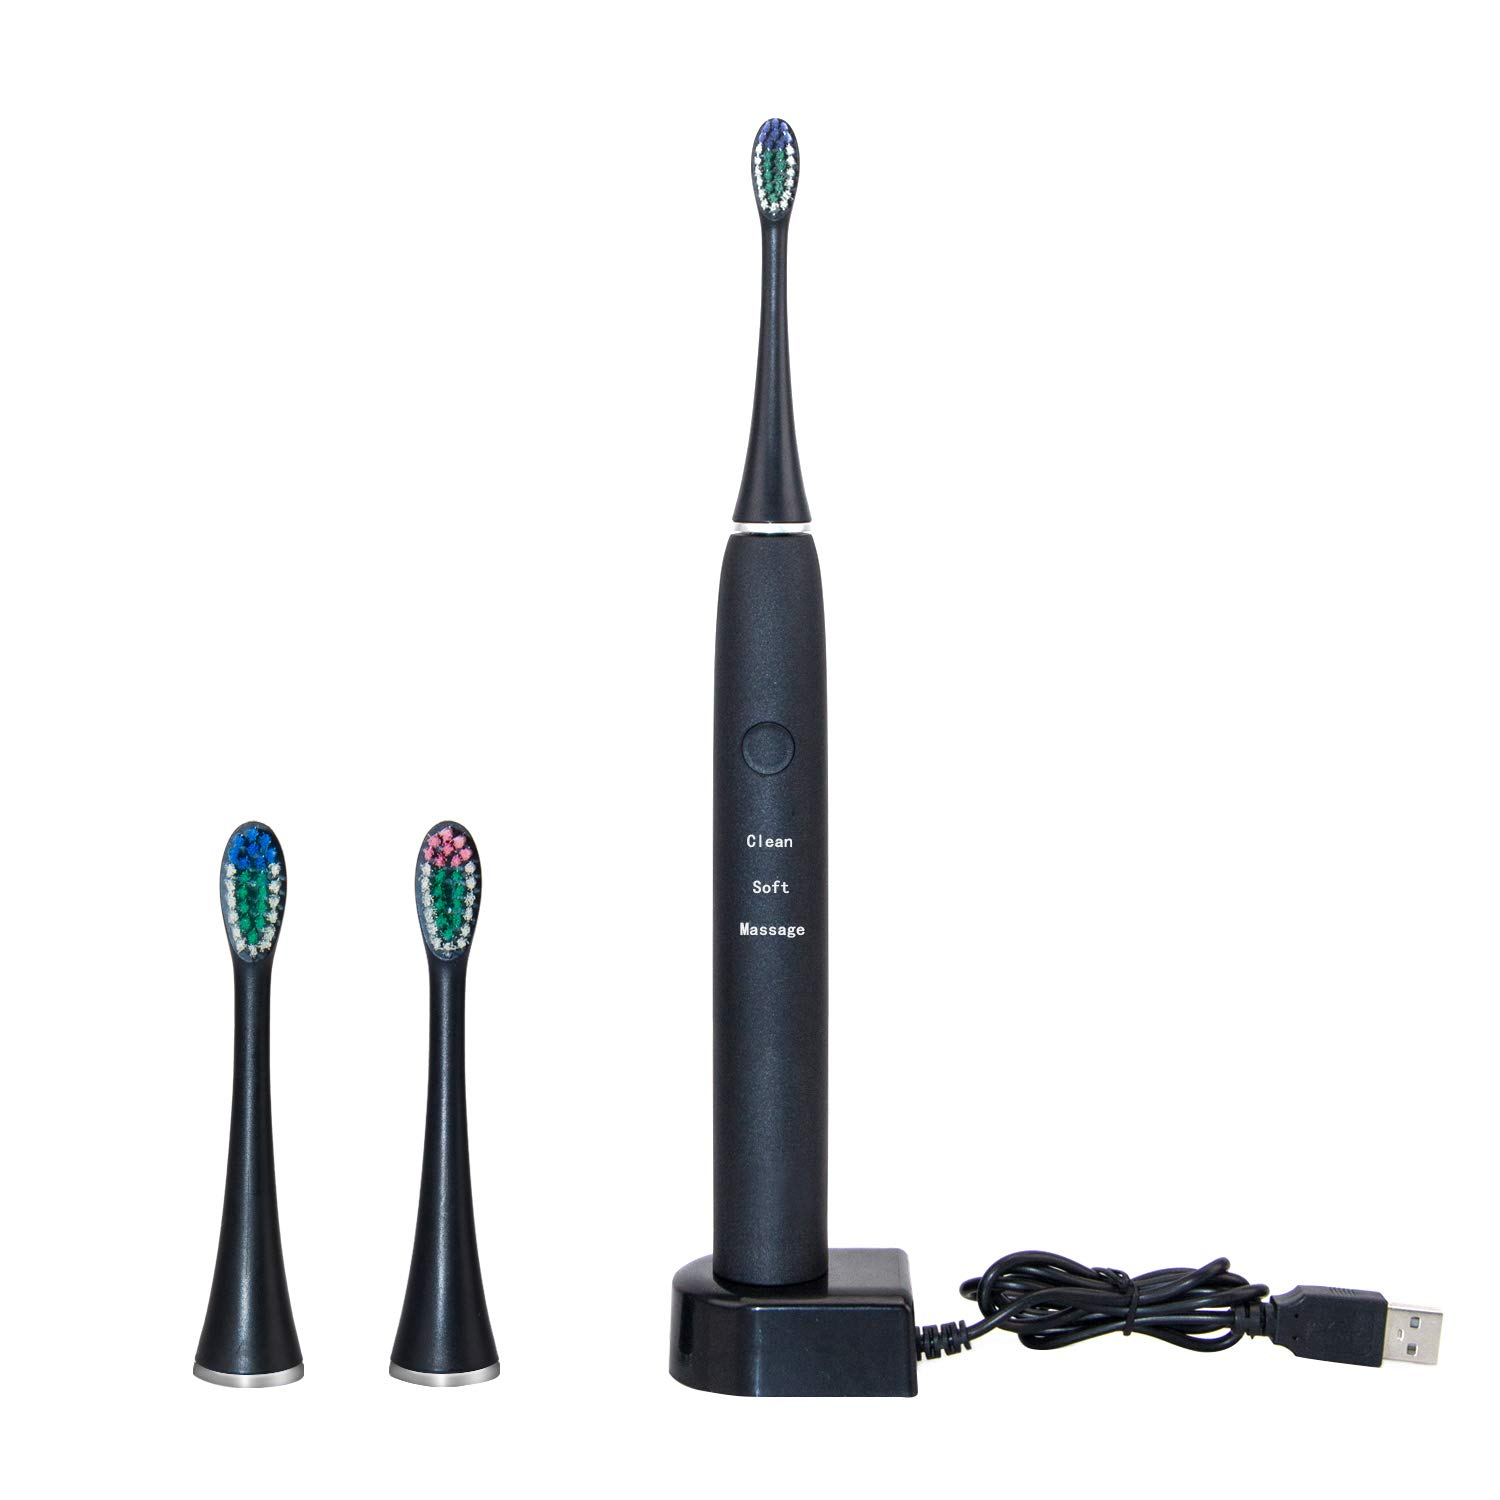 Sonic Electric Toothbrush Rechargeable For Adults-3 Modes 2 Minutes with Smart Timers – Travel Toothbrush with 3 Brush Heads,IPX7 Waterproof with USB Wireless Charging Base Holder